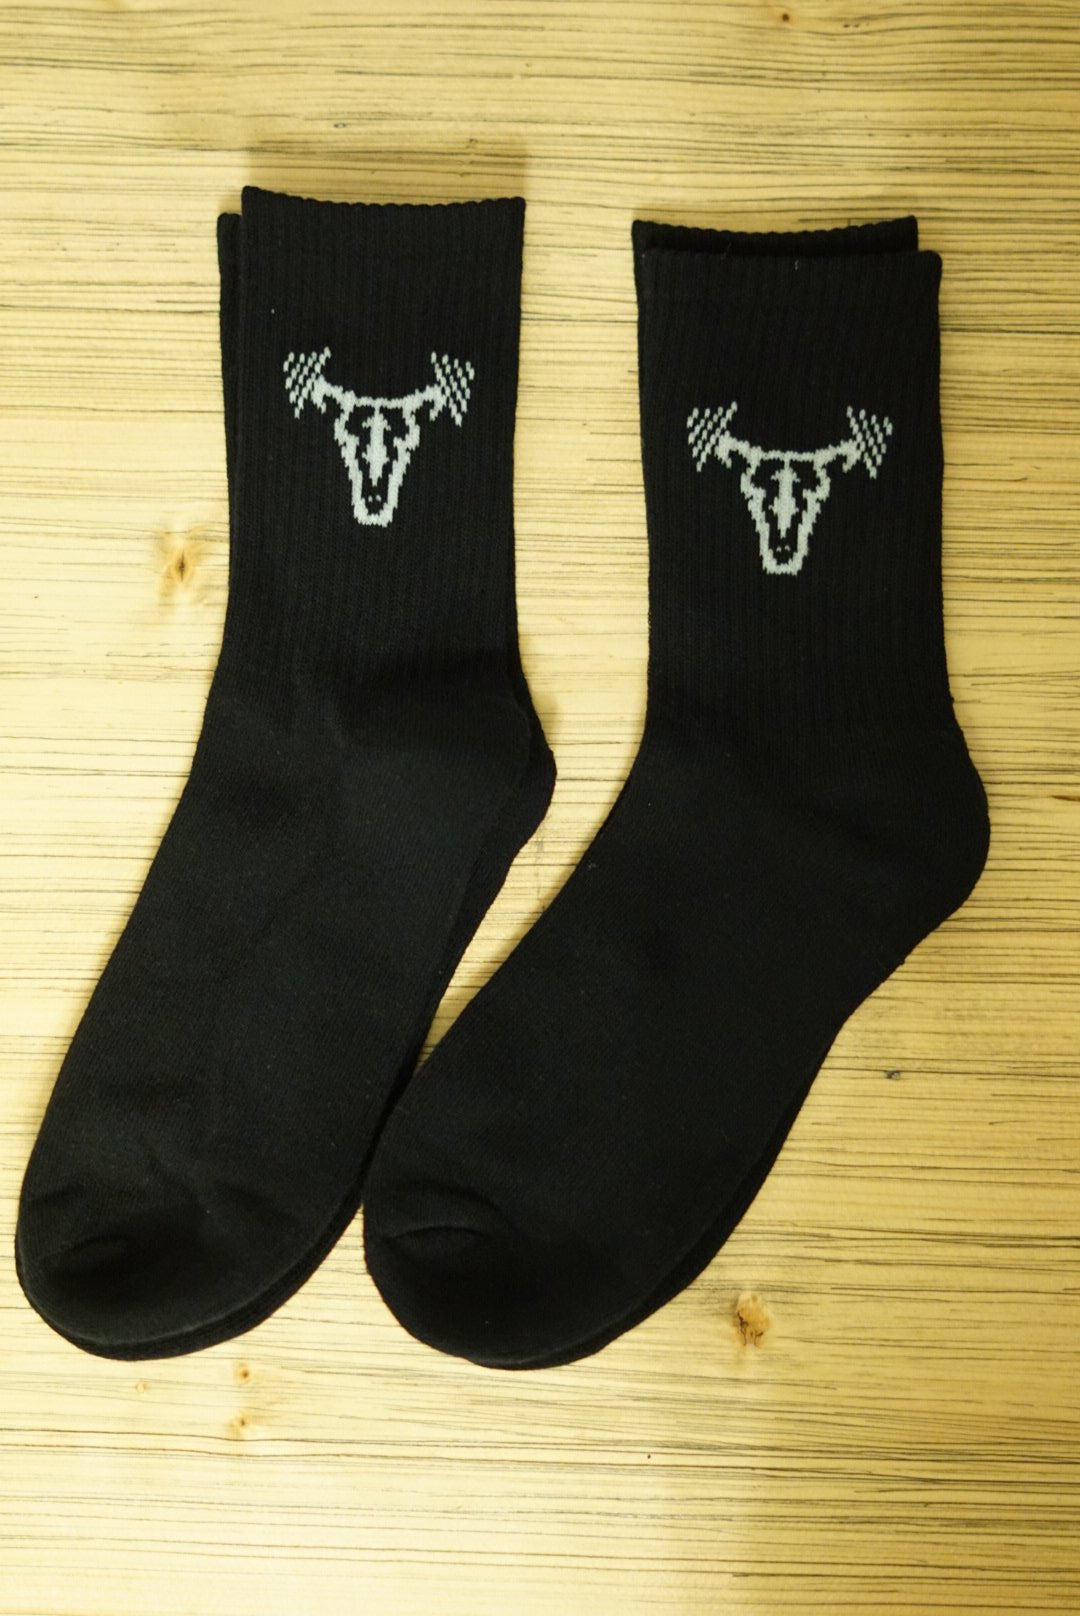 Iconic Black Socks (2 Pair)